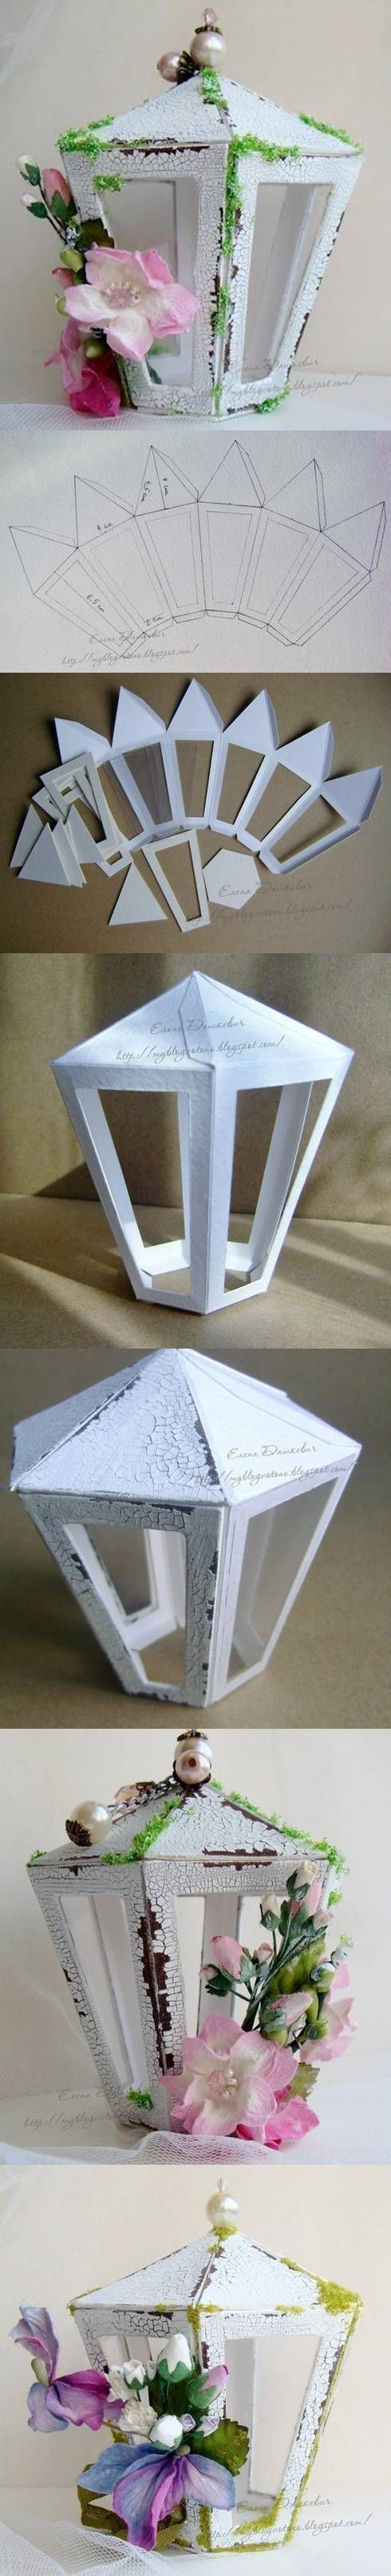 Template To Make A Paper Lantern Crafts Diy Paper Paper Crafts